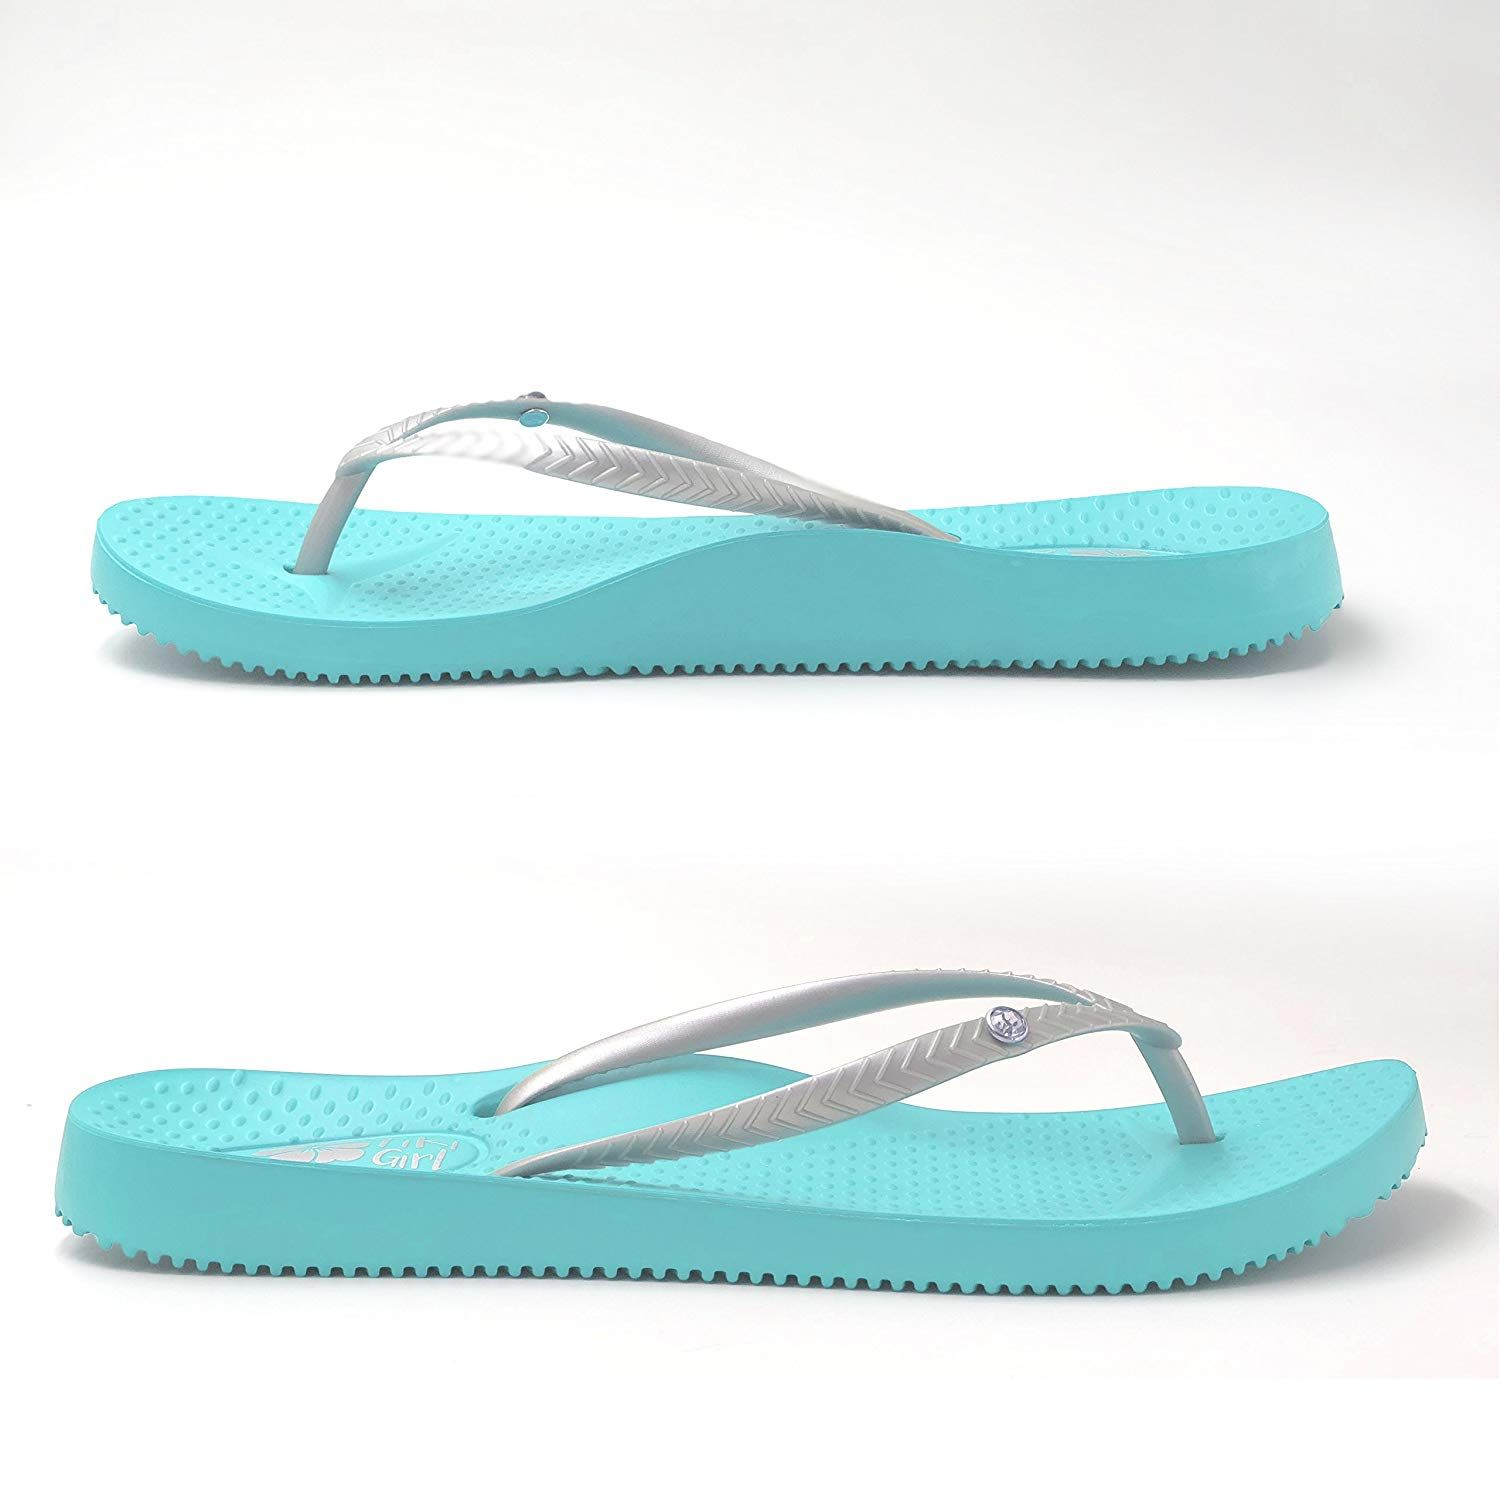 92edbb83d062aa FootActive Tiki Girl Orthotic Flip-Flops-with Biomechanical Arch to Support  Feet